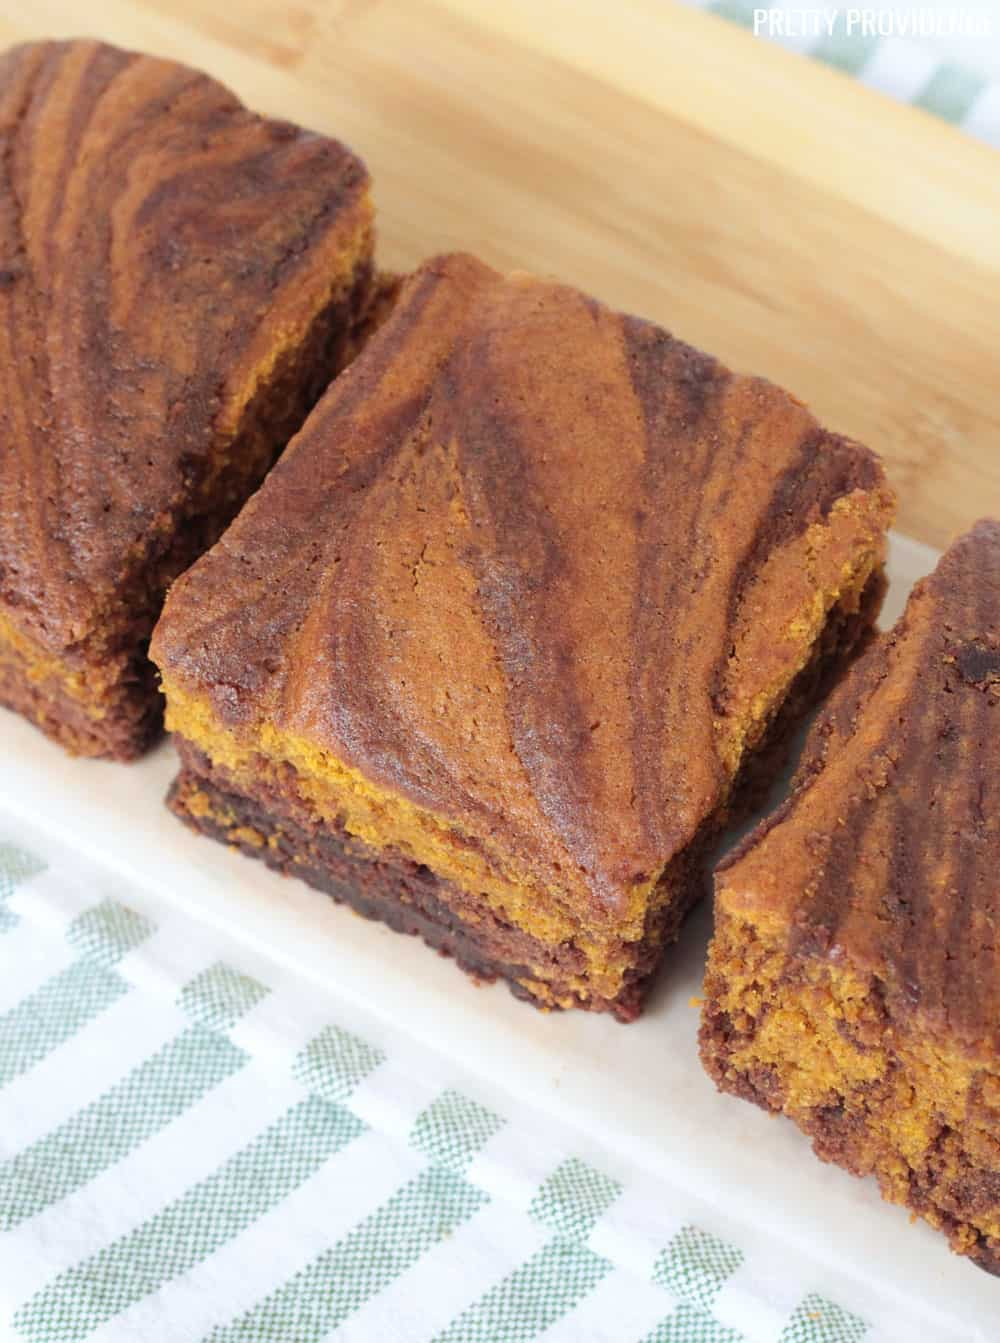 Pumpkin Brownies, three squares on a cutting board, with a green and white striped towel under it.